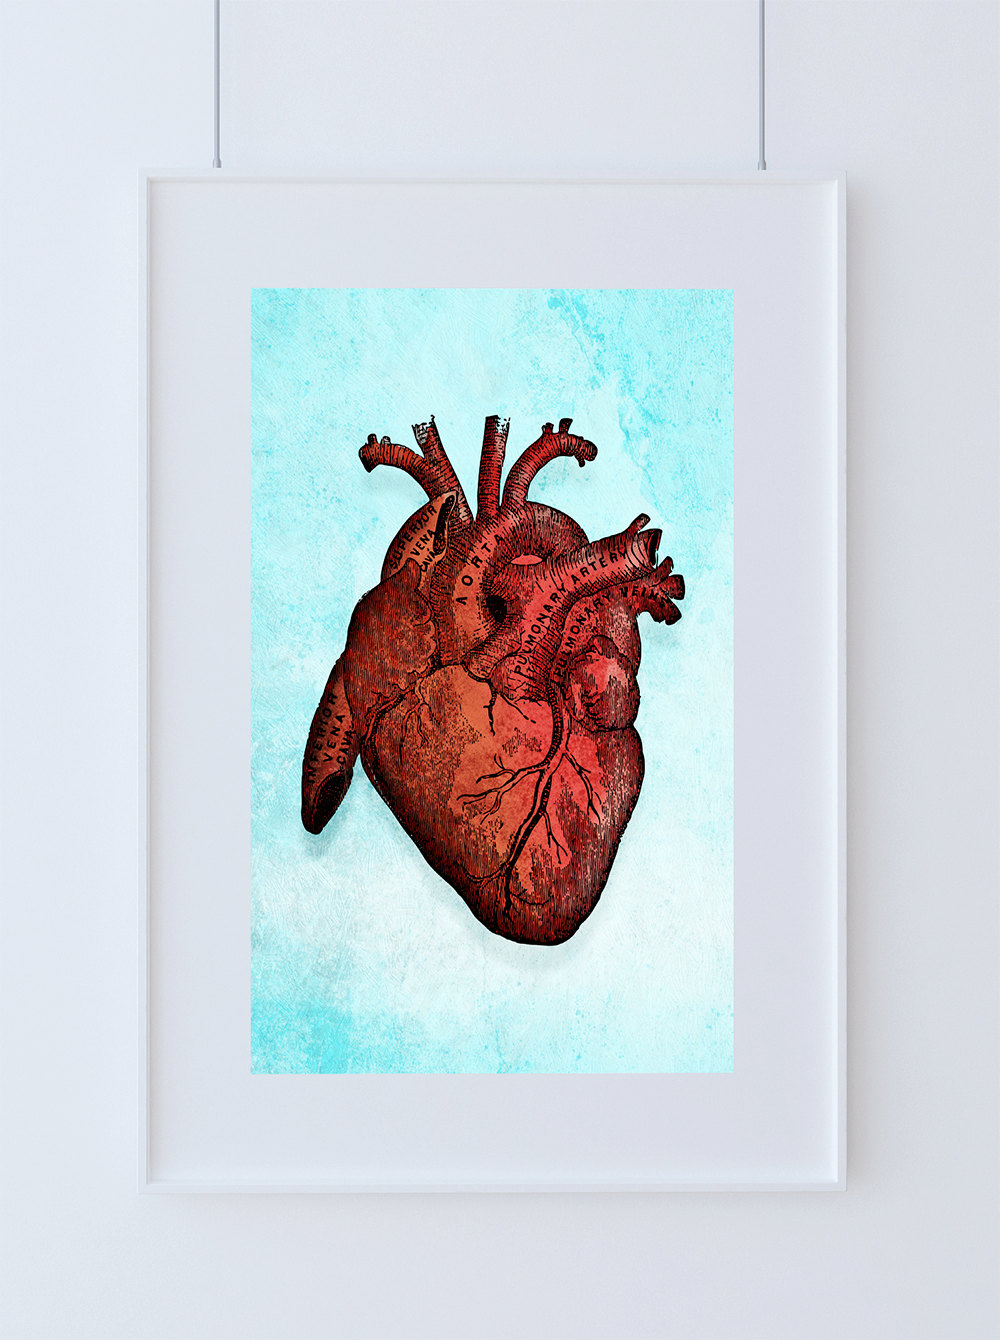 Medical Illustration Vintage Victorian Human Heart Anatomy Poster 18x24 24x36 - Large Giclee Print on Cotton Canvas and Satin Photo Paper